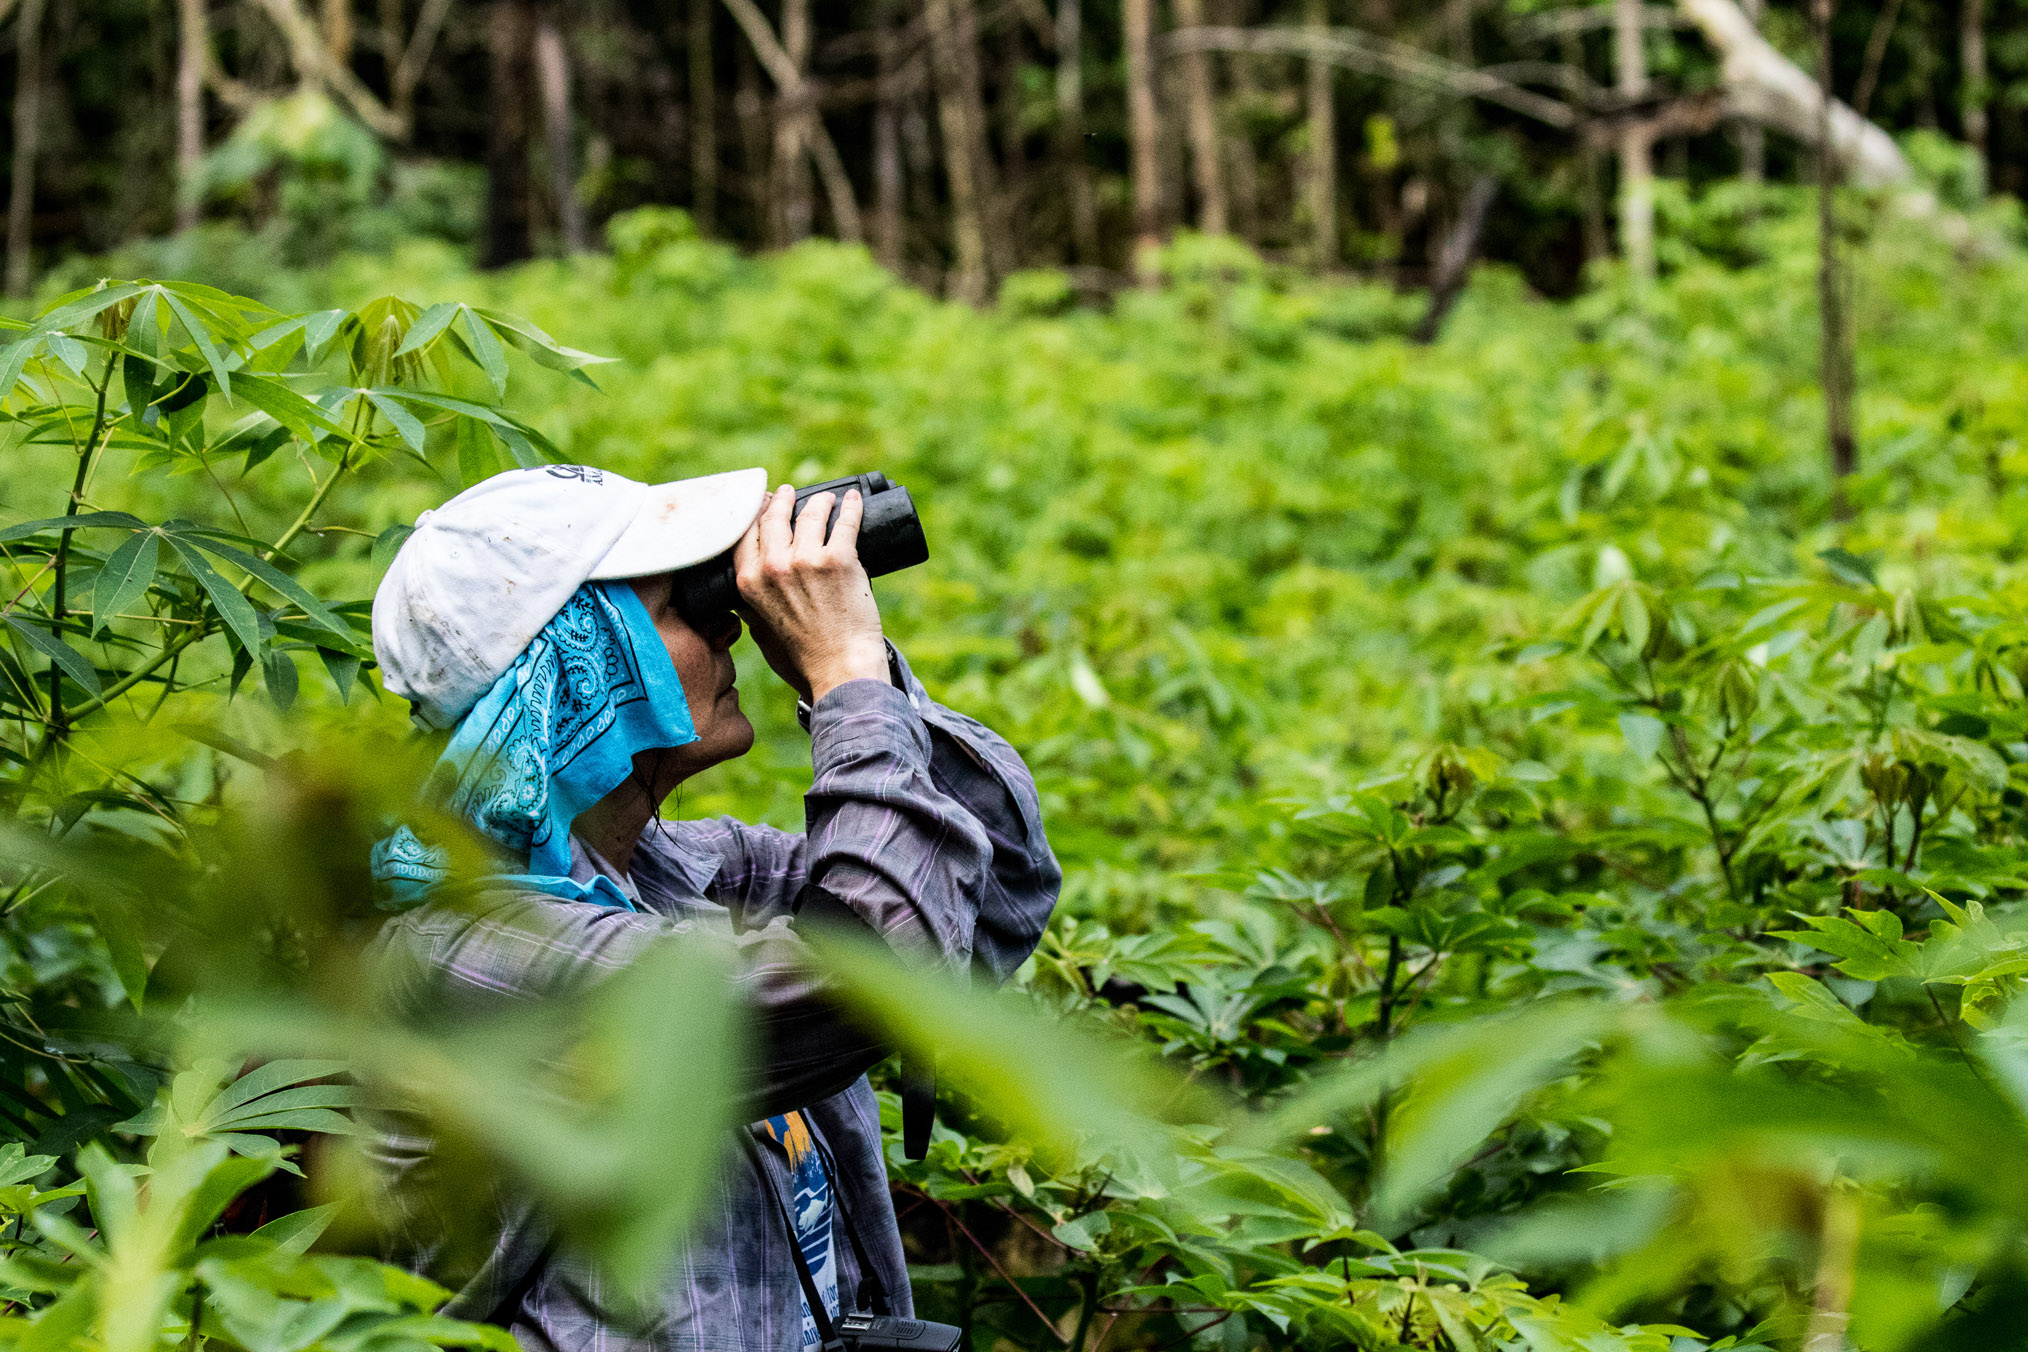 Laura Marsh looks for monkeys in the forest surrounding a manioc field a few kilometers from a village.